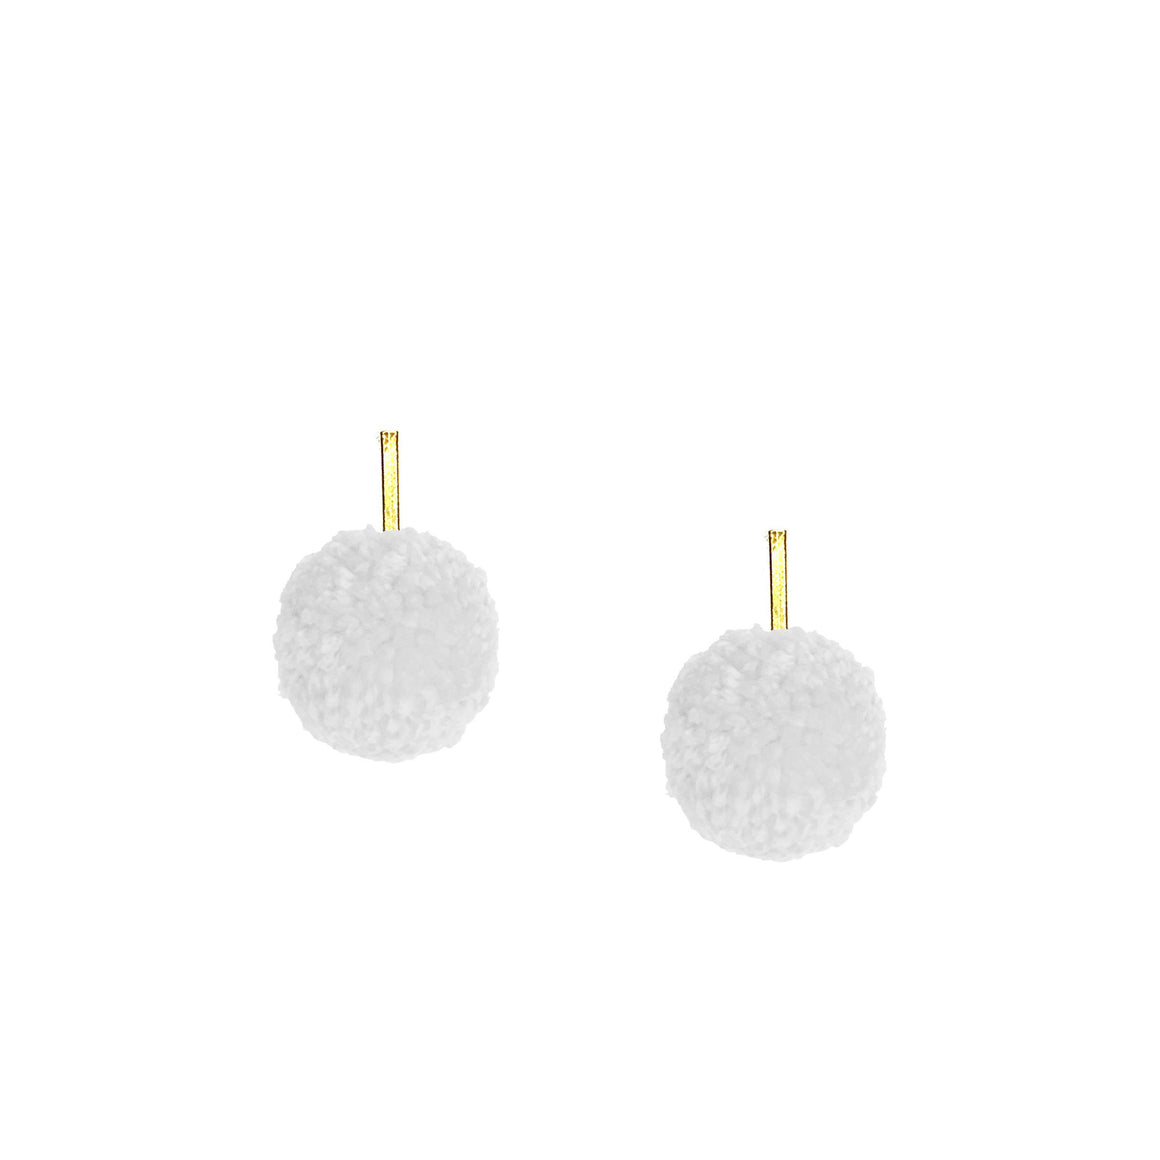 "White 1"" Yarn Pom Pom Stud Earrings, earring, Tuleste, Tuleste"